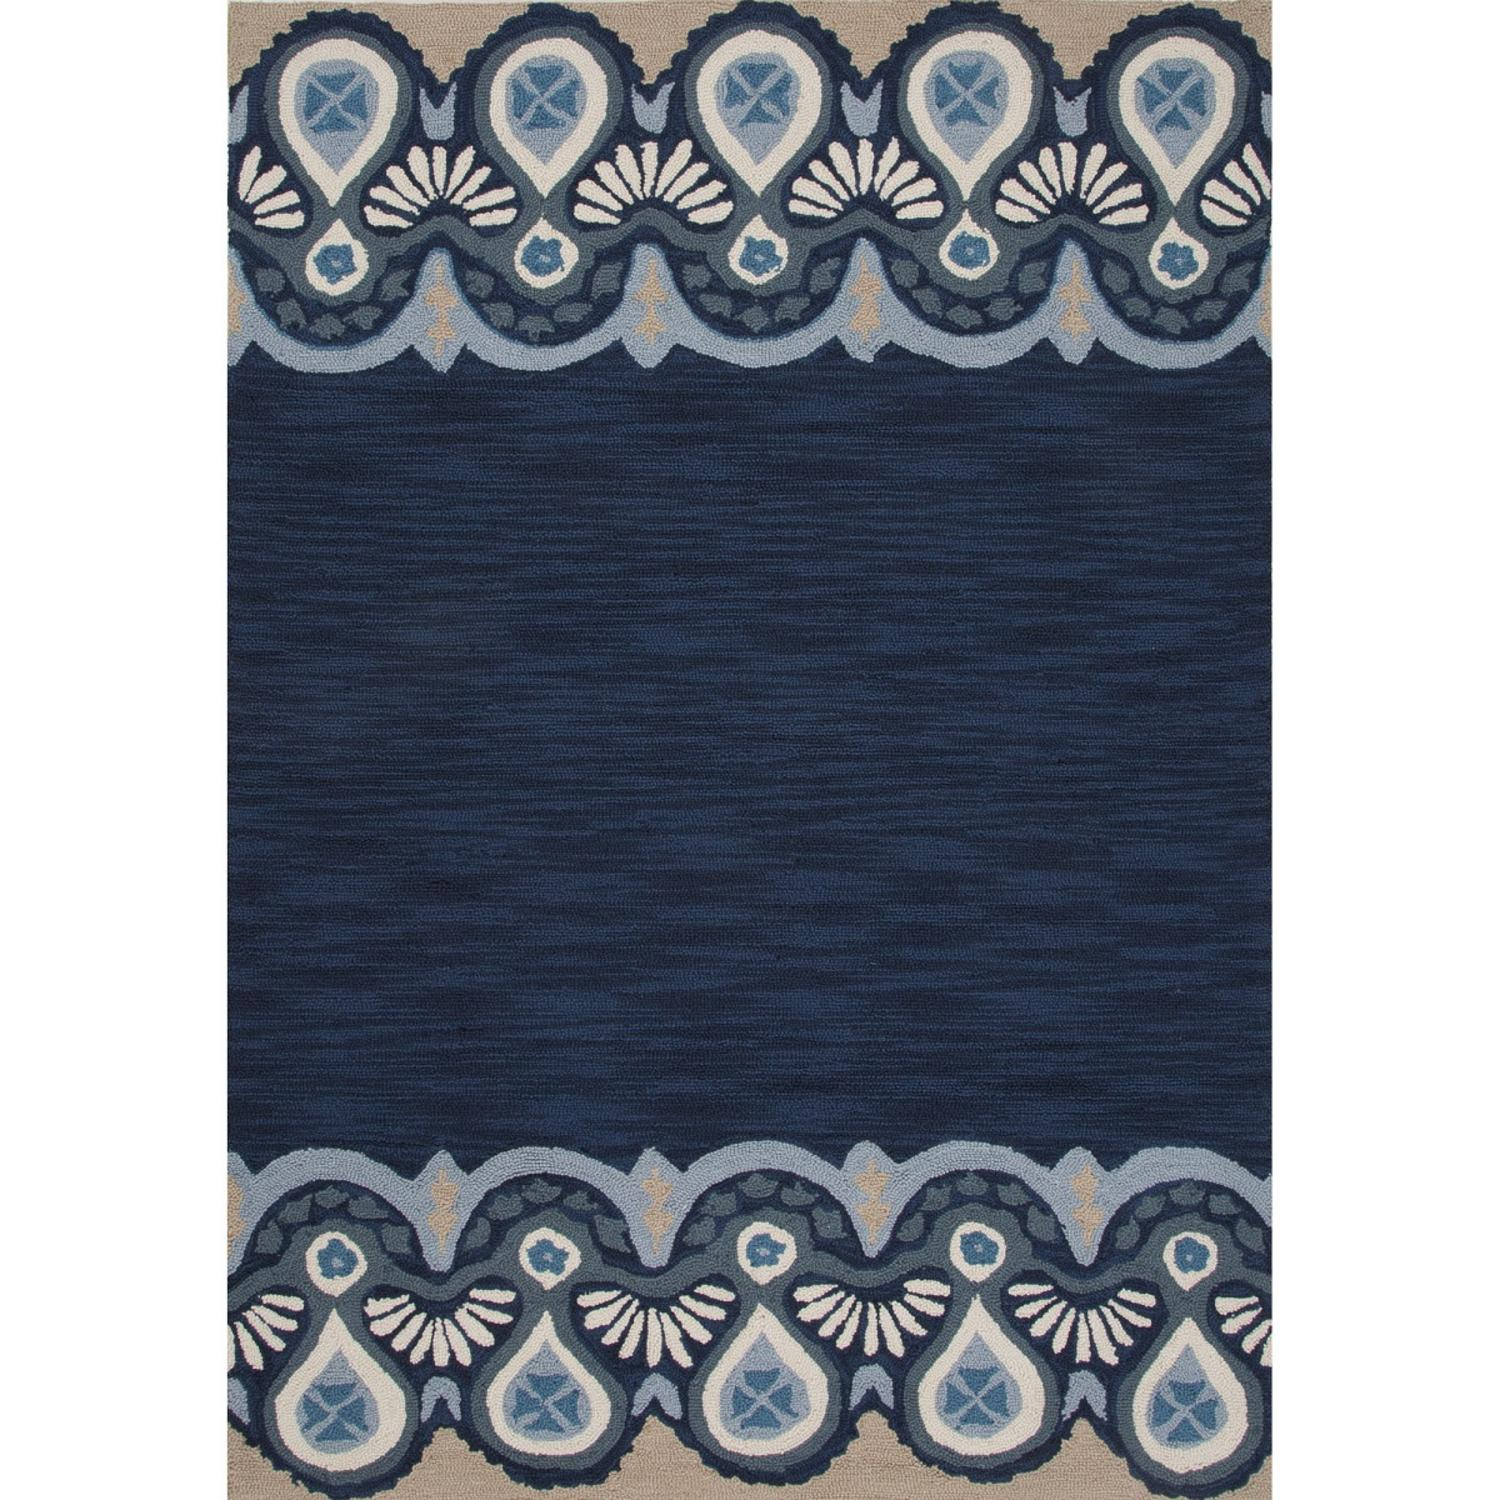 2' x 3' Navy Blue, Ivory and Tan Essential Transitional Hand Tufted Area Throw Rug